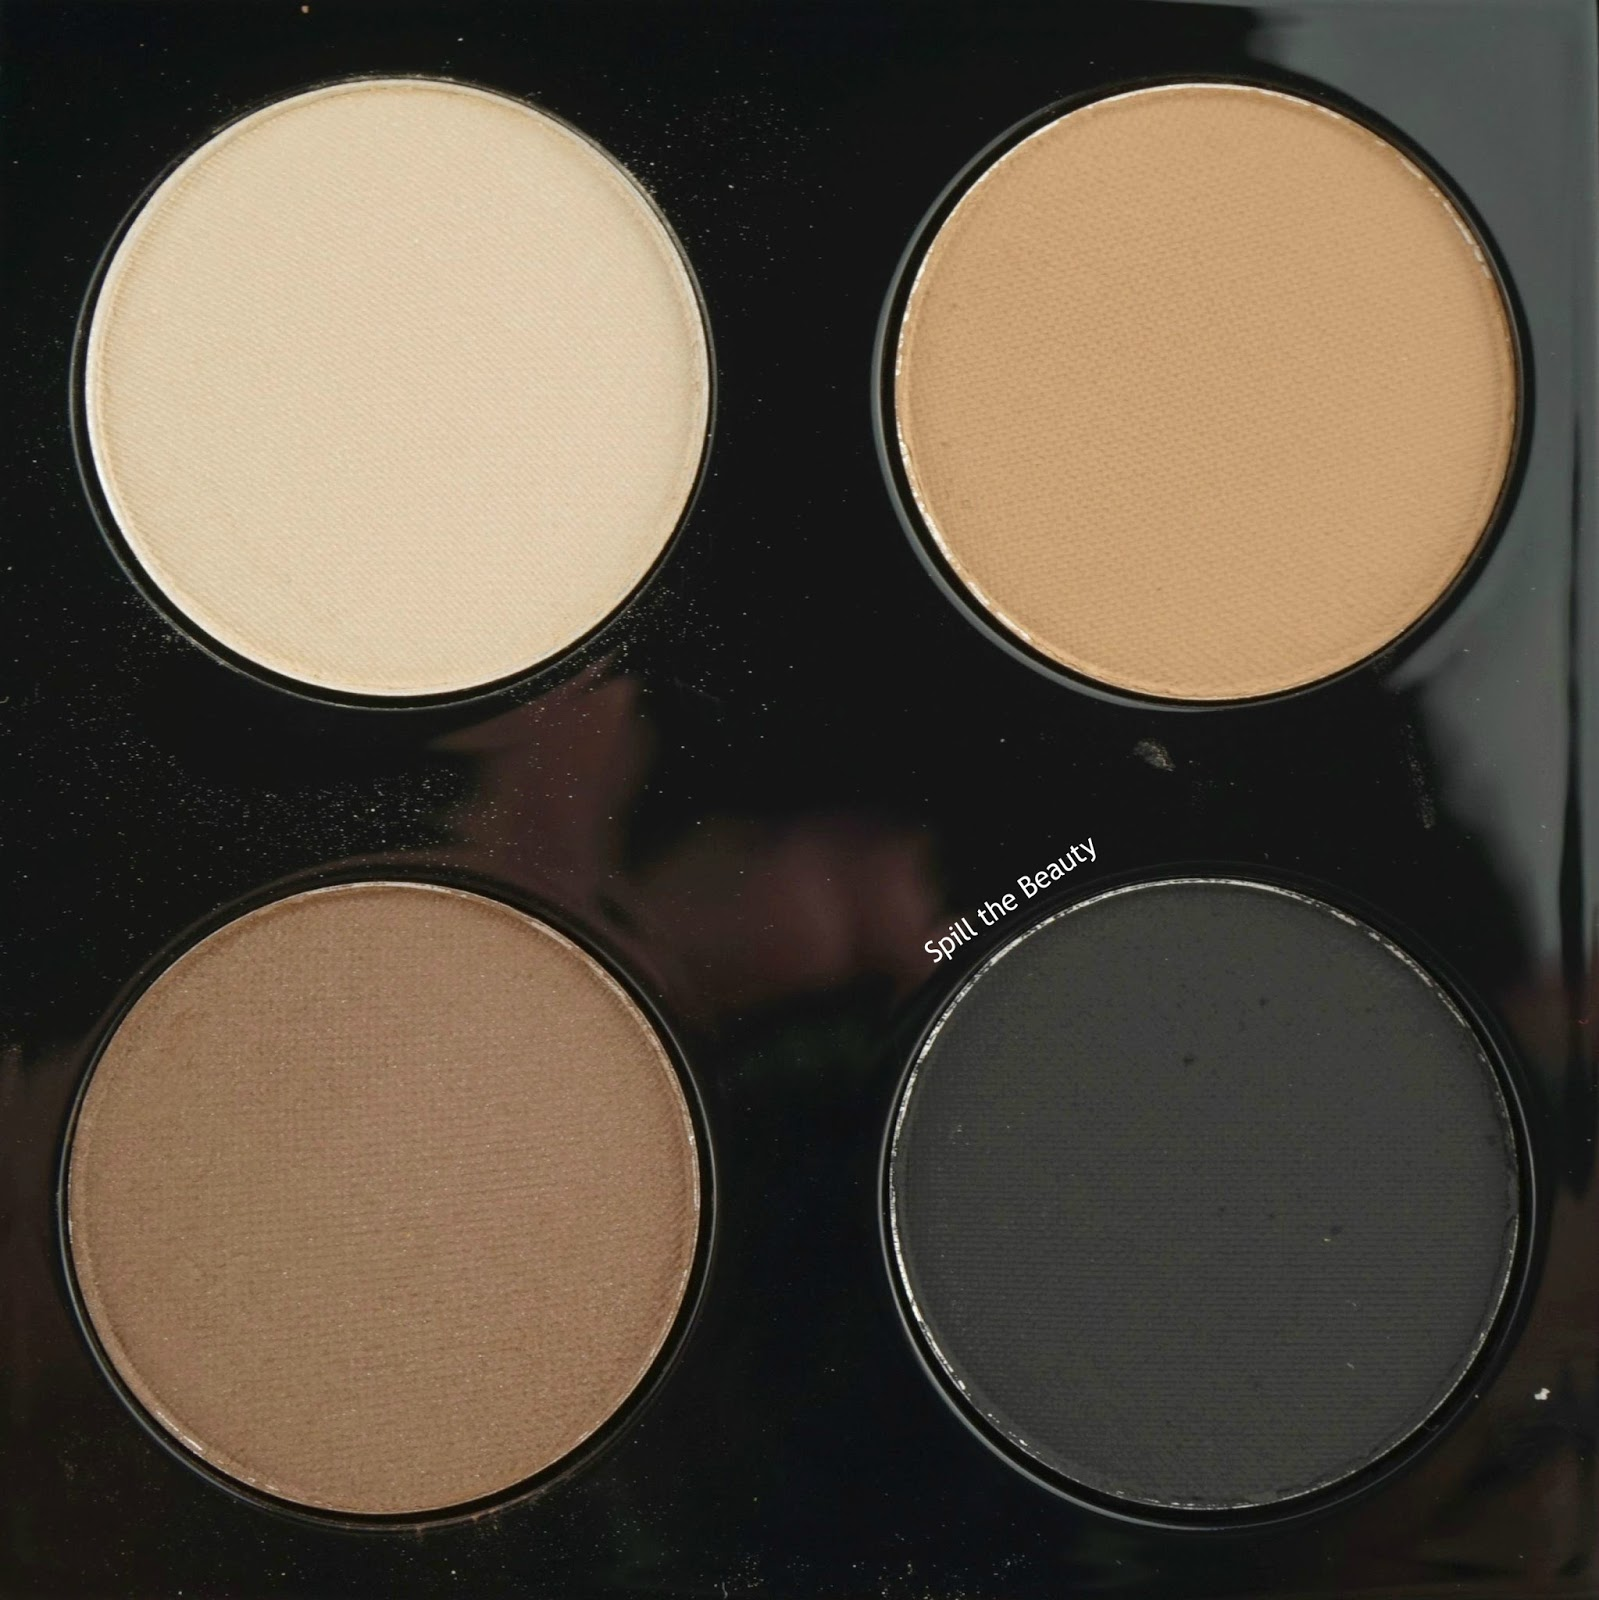 mac brant brothers eyeshadow quad 4 pillars review swatches arm swatch